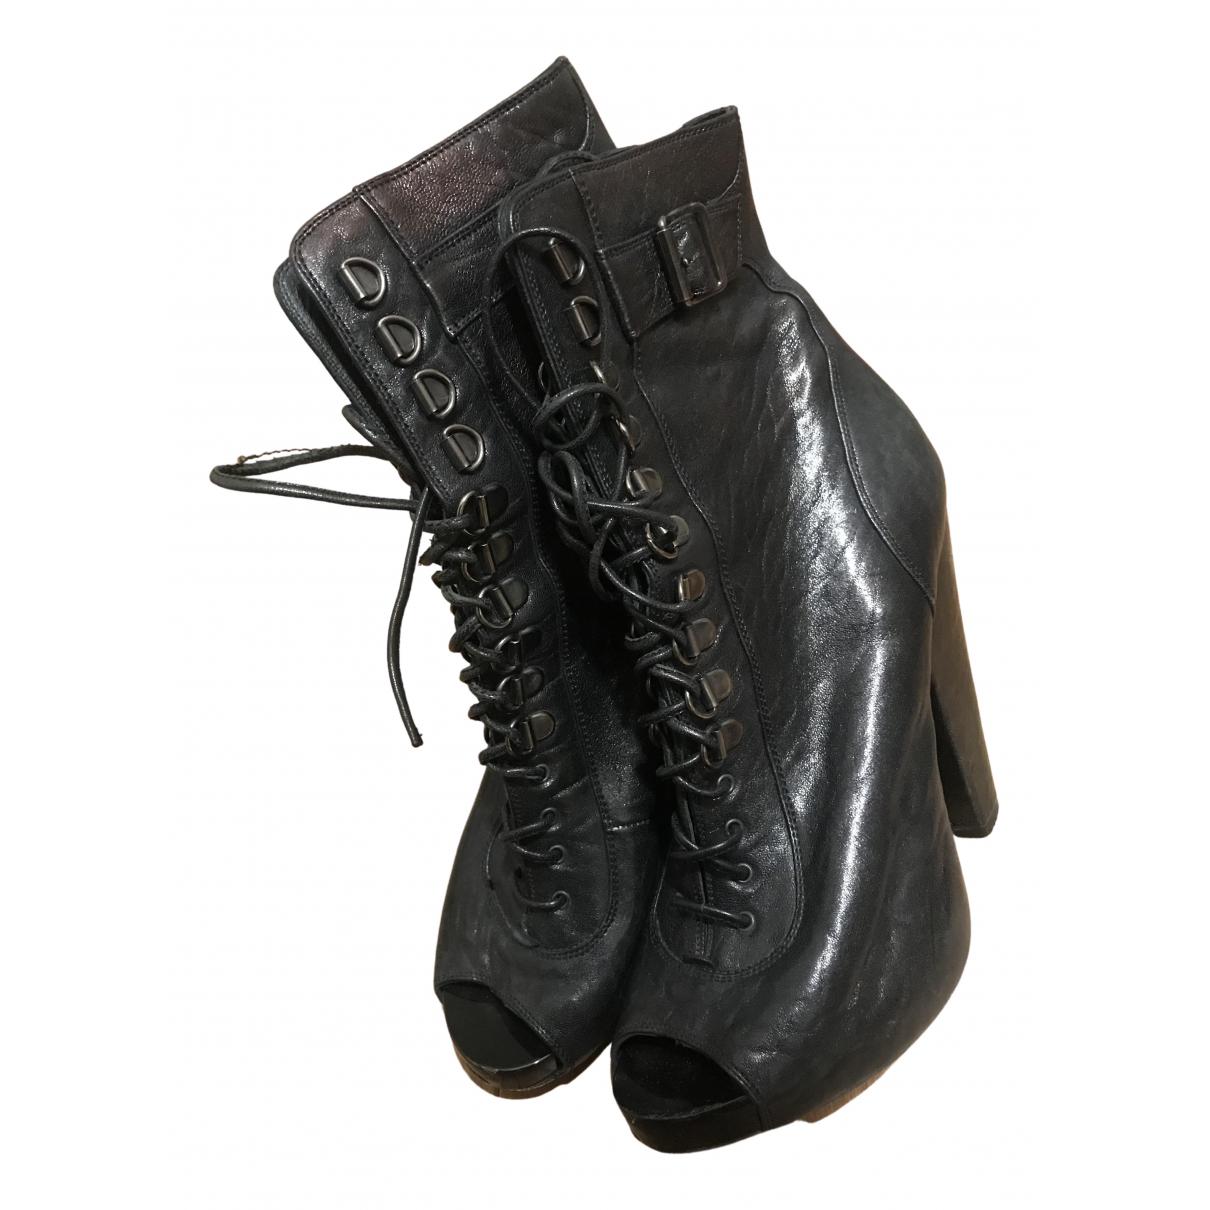 Givenchy \N Black Leather Boots for Women 38.5 EU